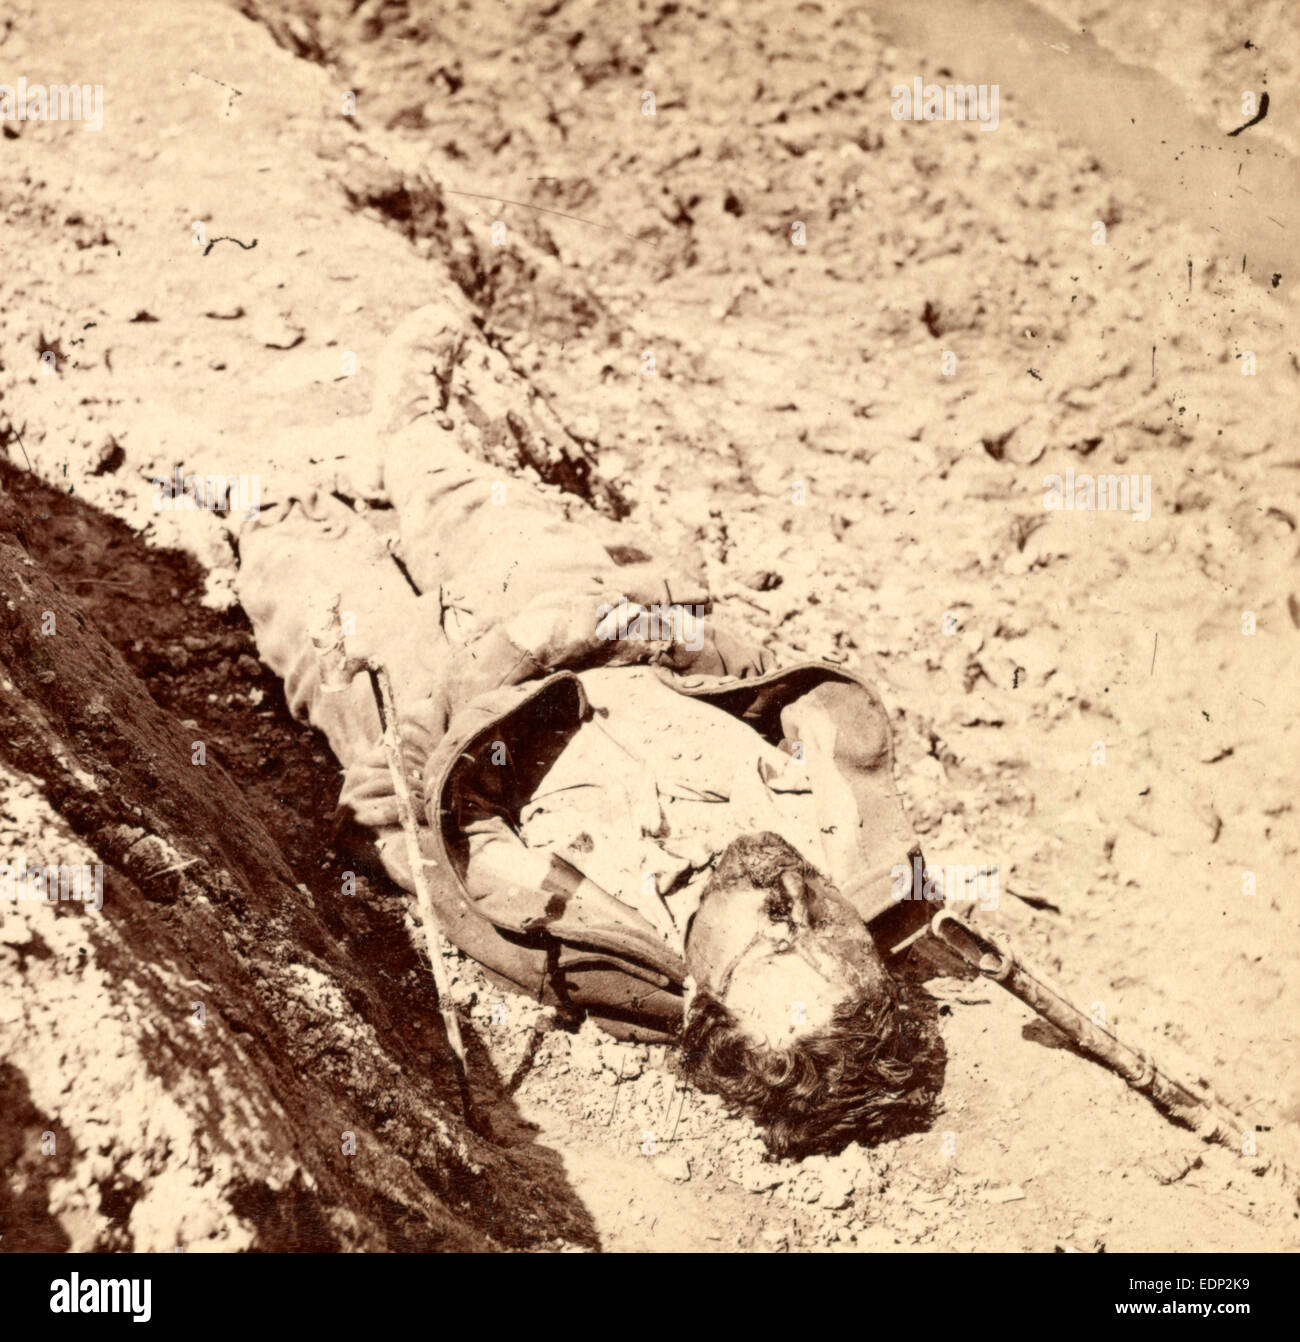 Dead Confederate soldier in the trenches, US, USA, America, Vintage photography - Stock Image